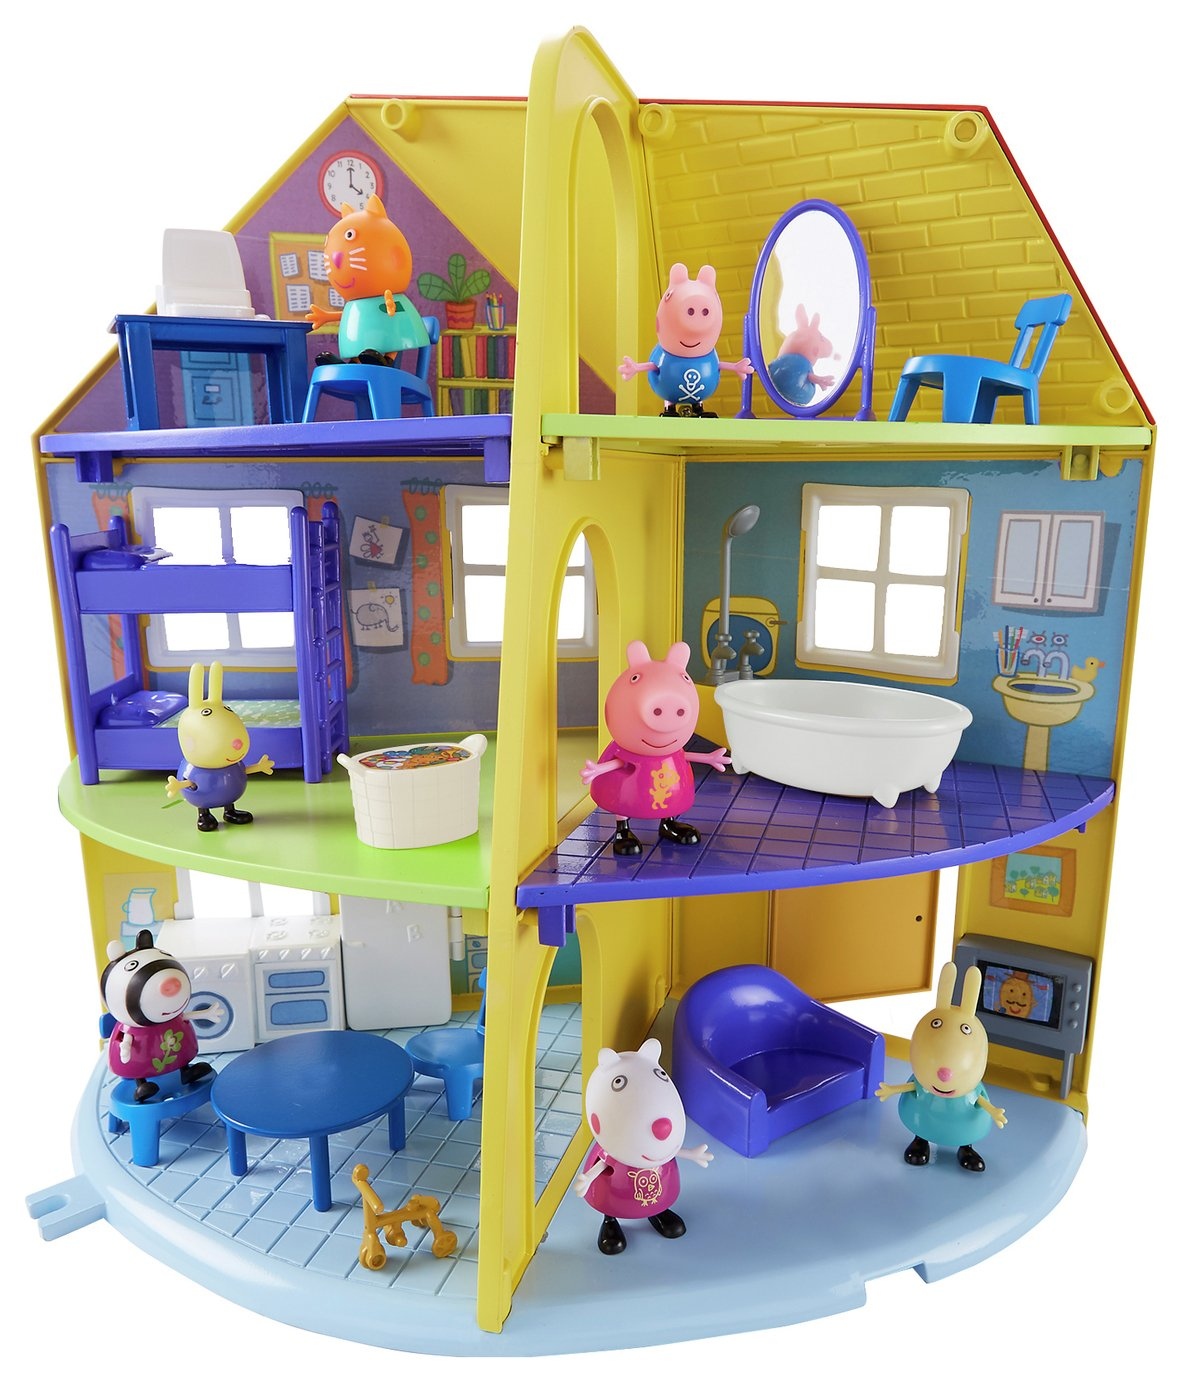 Peppa Pig Peppa's Family Home Playset from Peppa pig